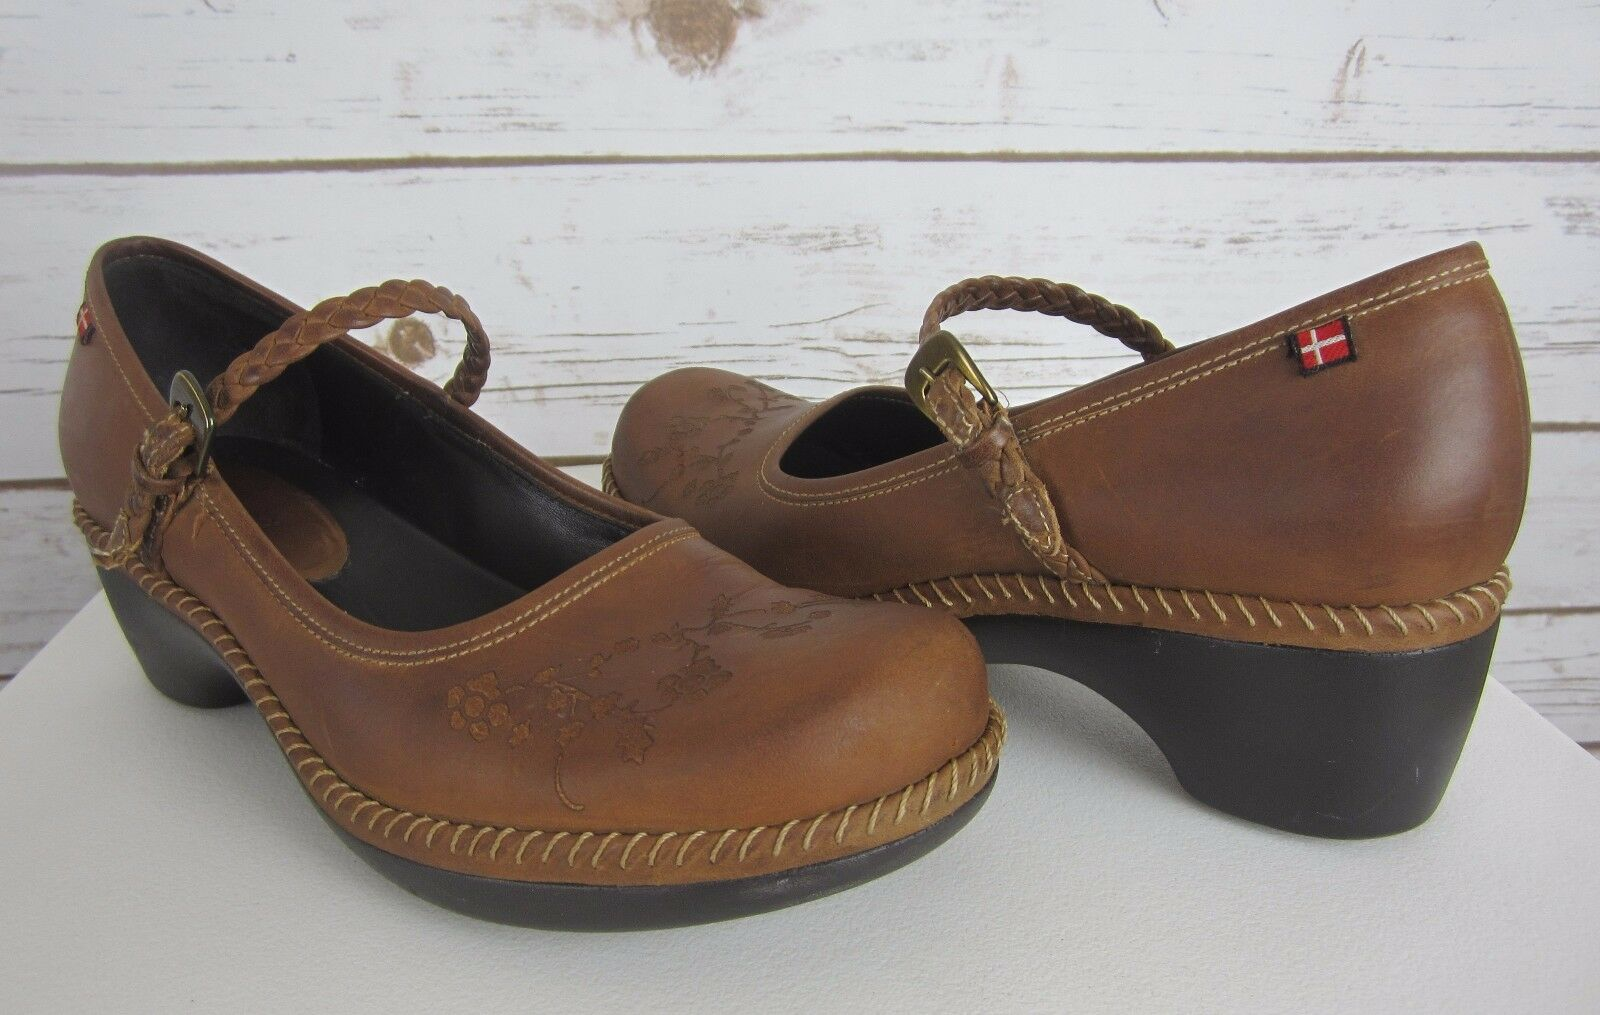 ECCO SUSSEX Womens US 8 Brown Tooled Leather Mary Janes Clogs Shoes Braided